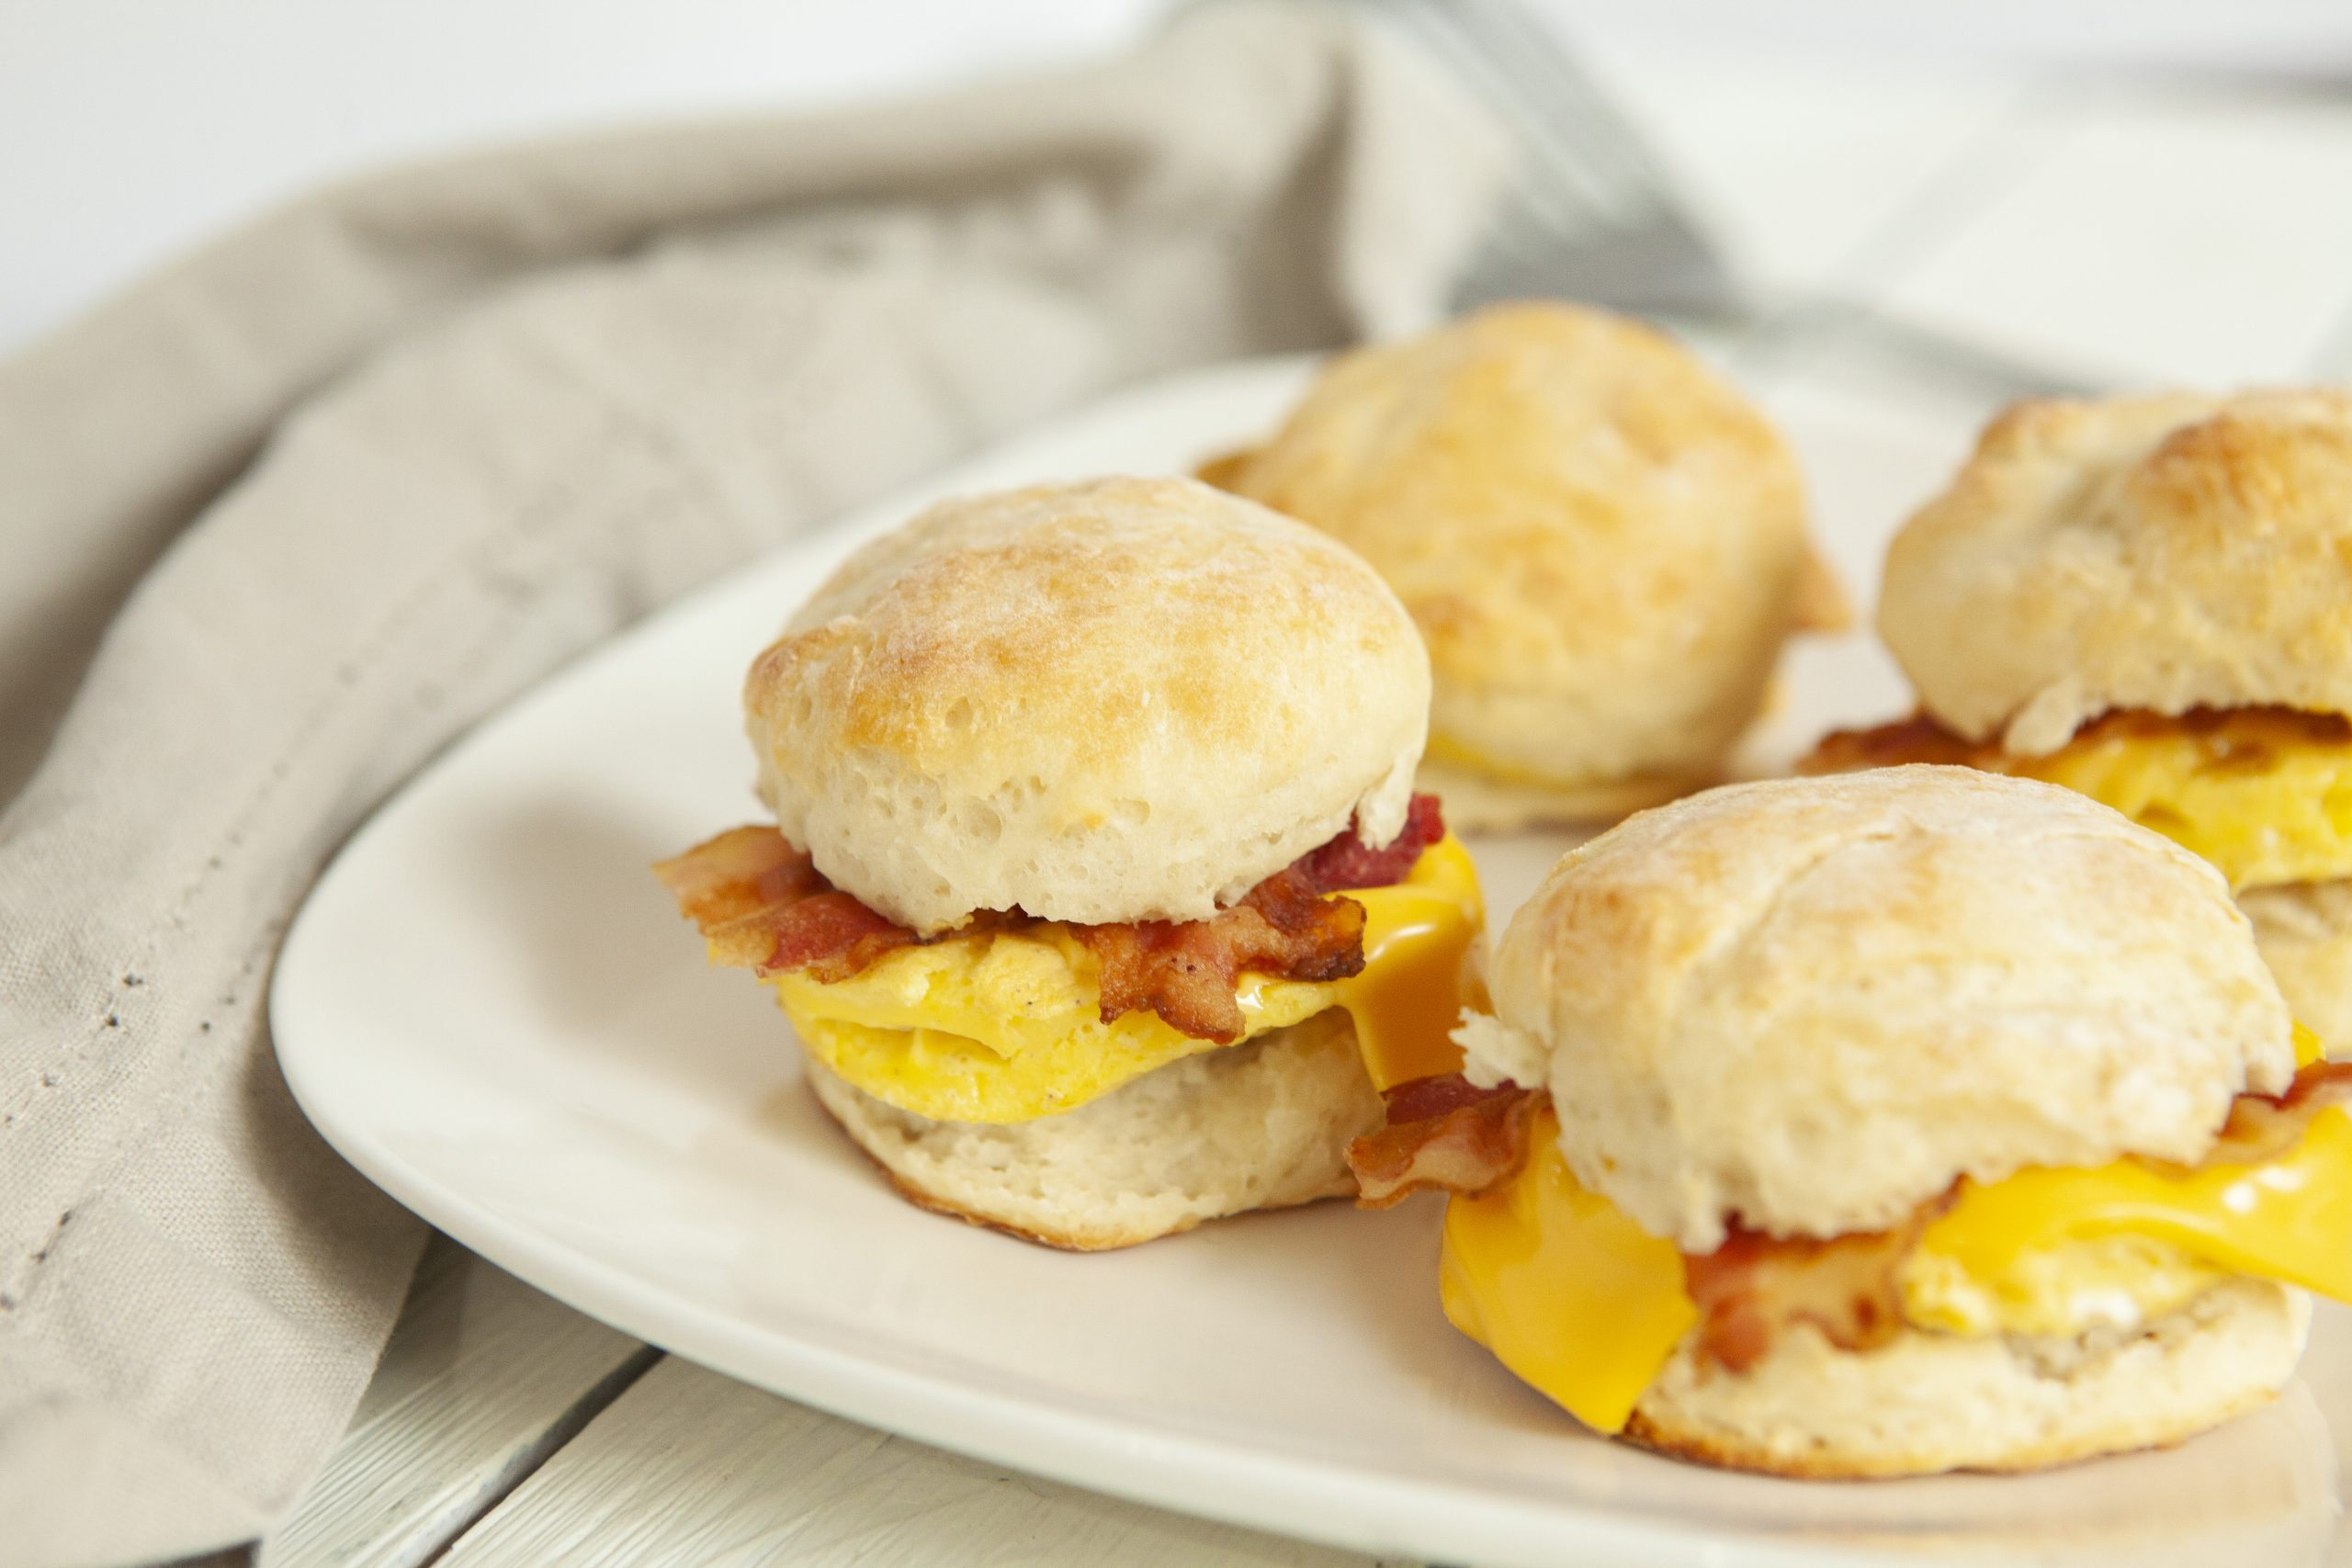 Weight Watchers Bacon, Egg and Cheese Biscuit